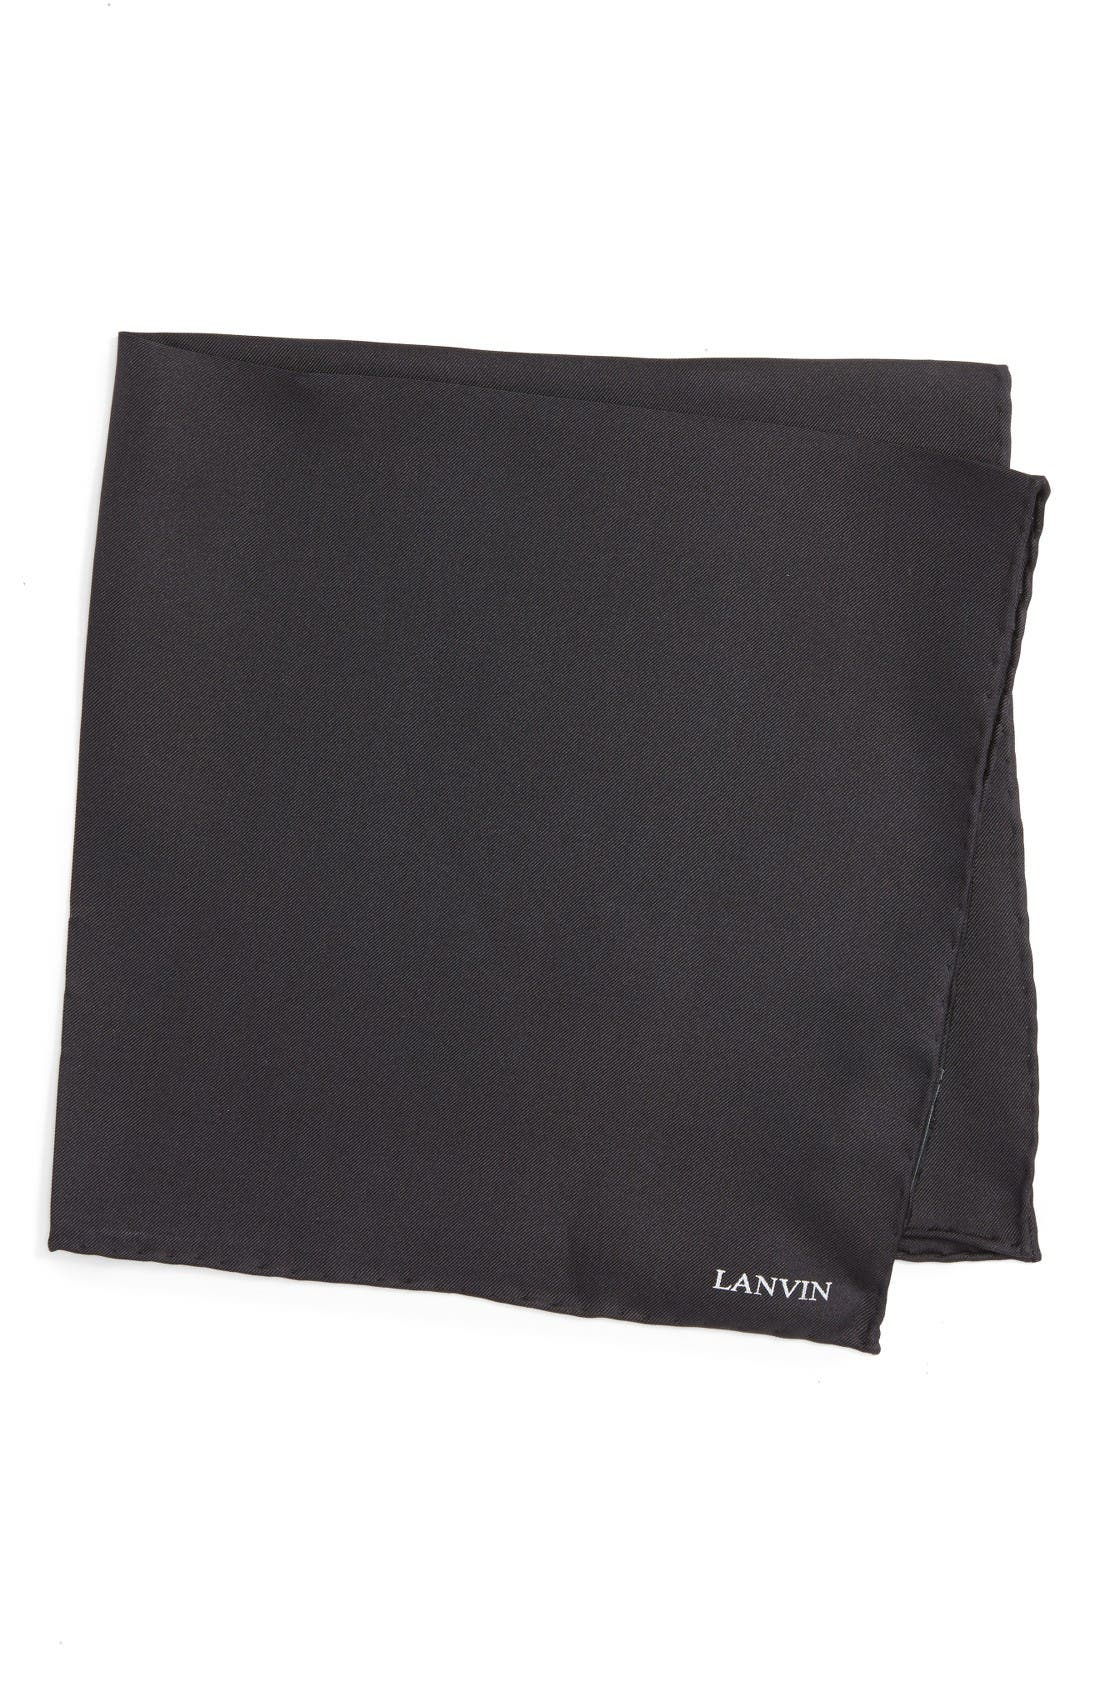 Lanvin Solid Silk Pocket Square